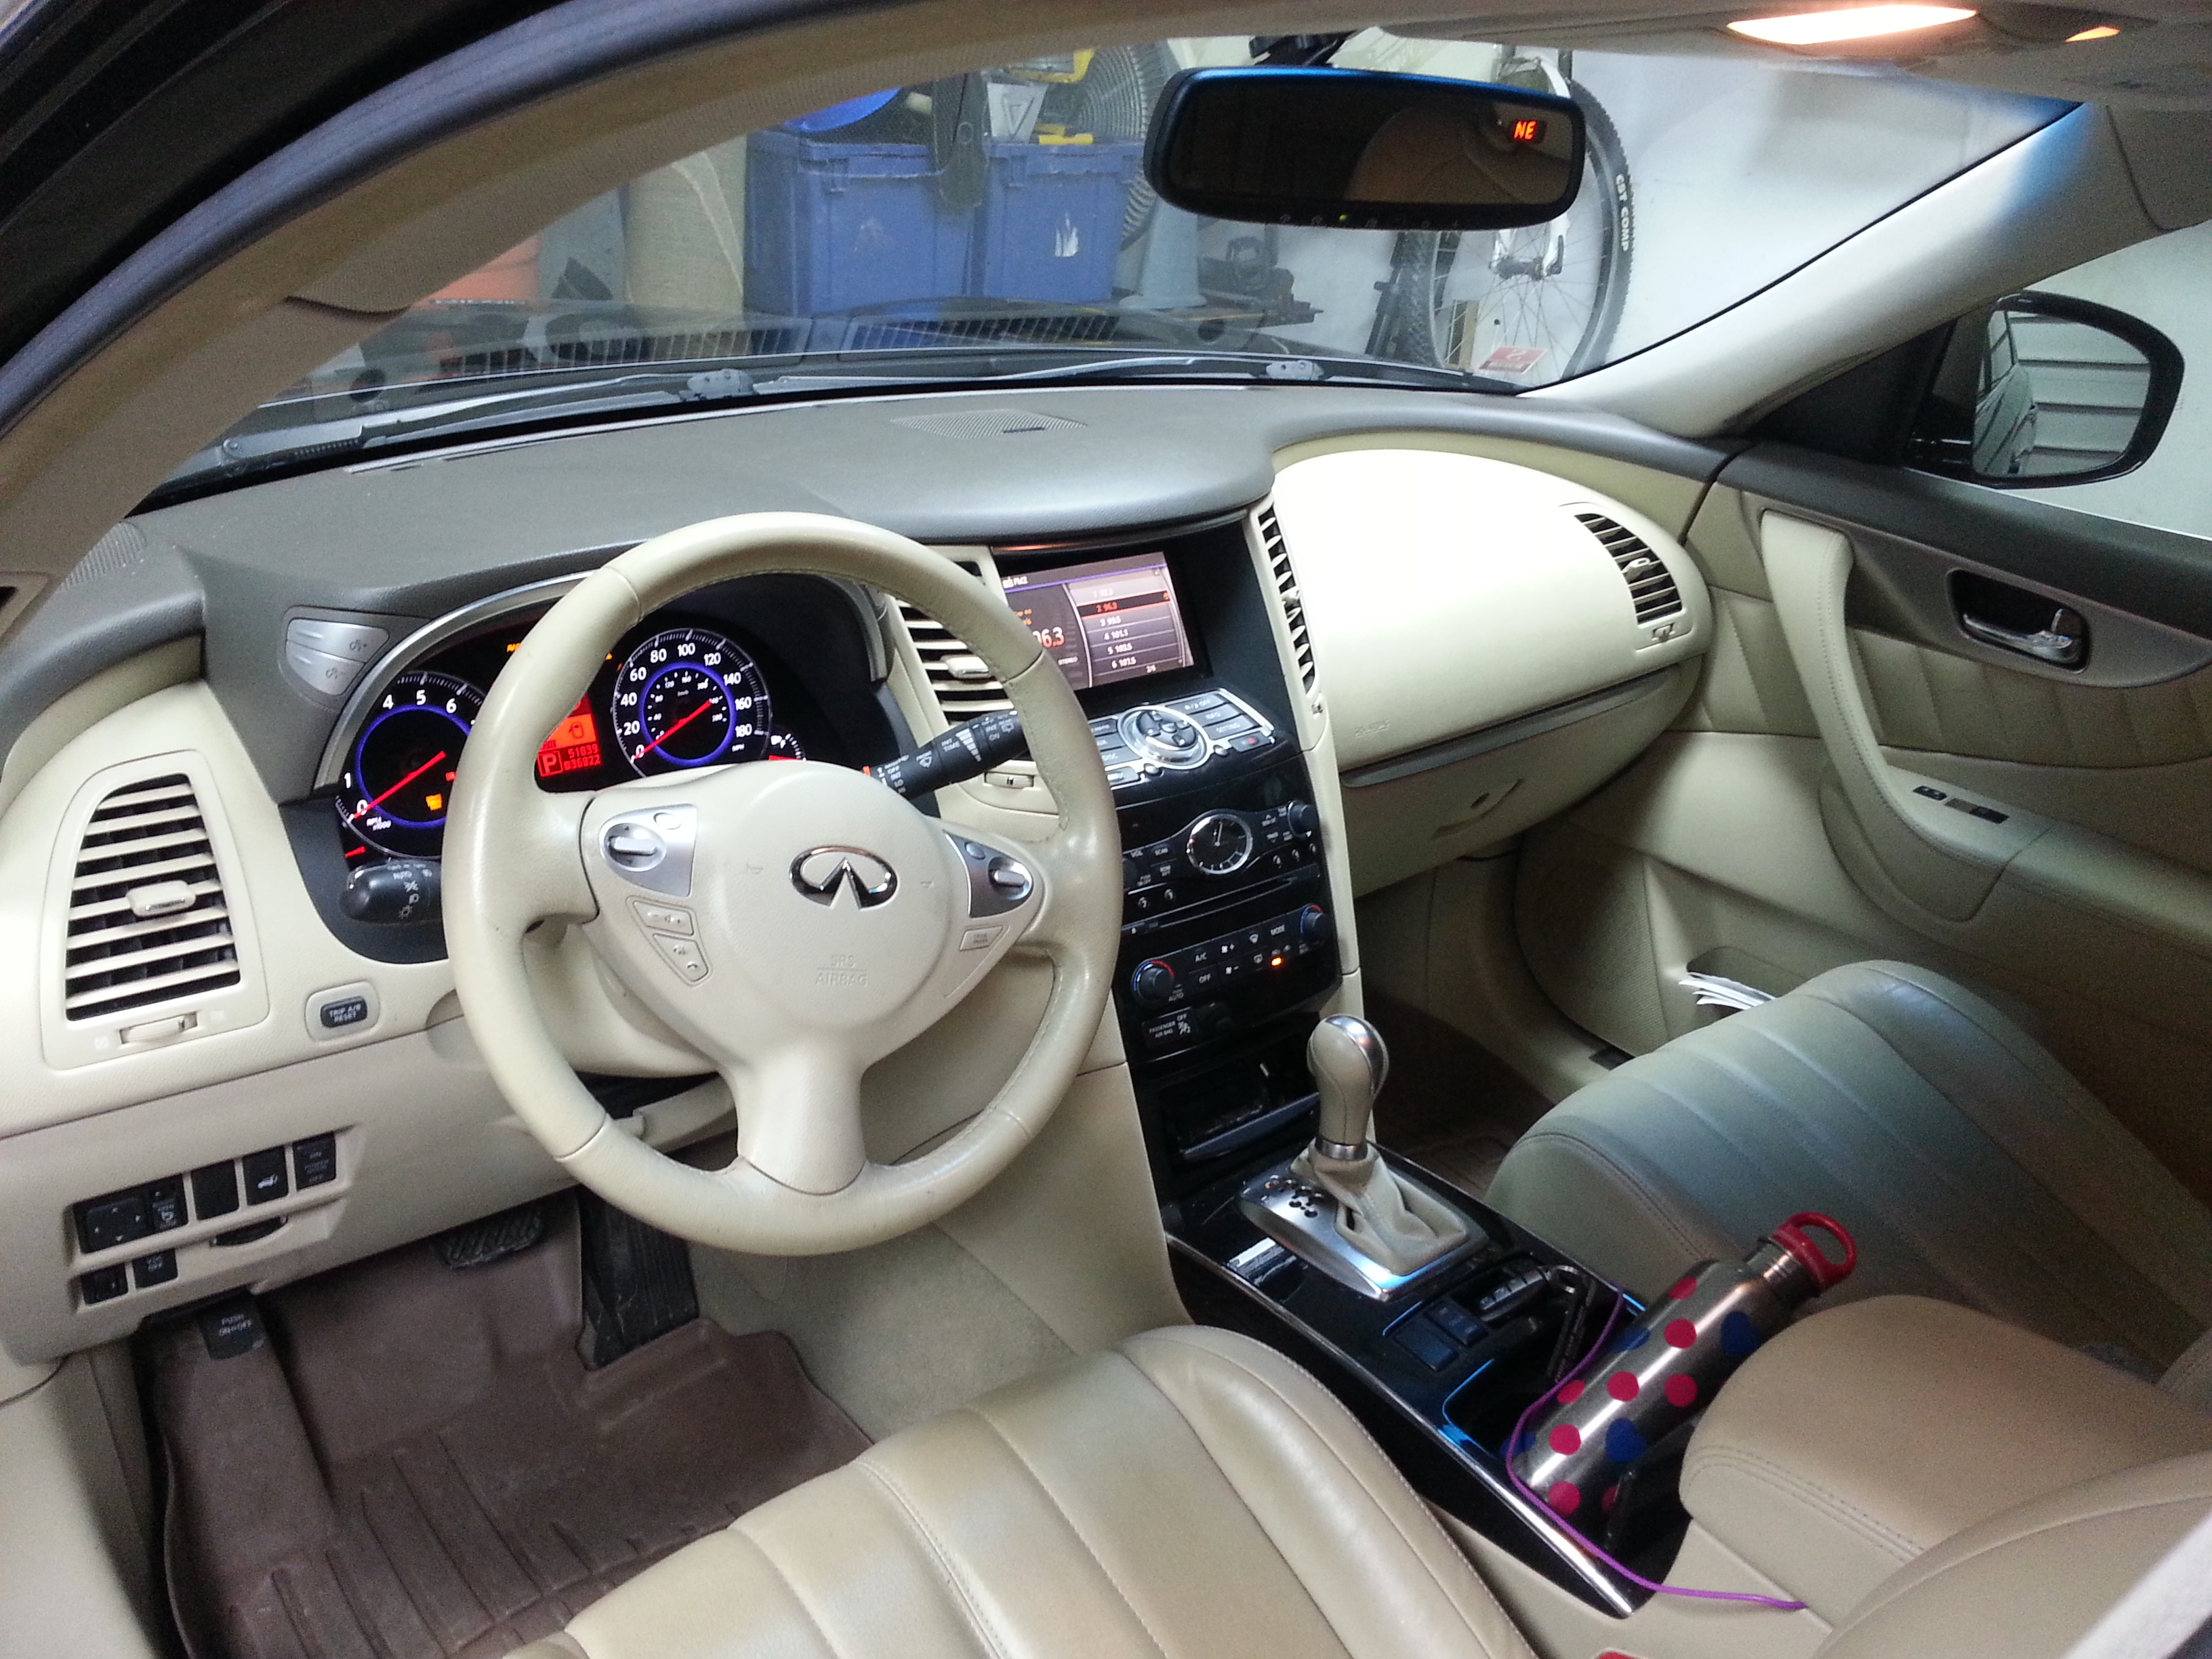 Infiniti Remote Car For Q45 Starter Installing On Nissan Mobile Electronic